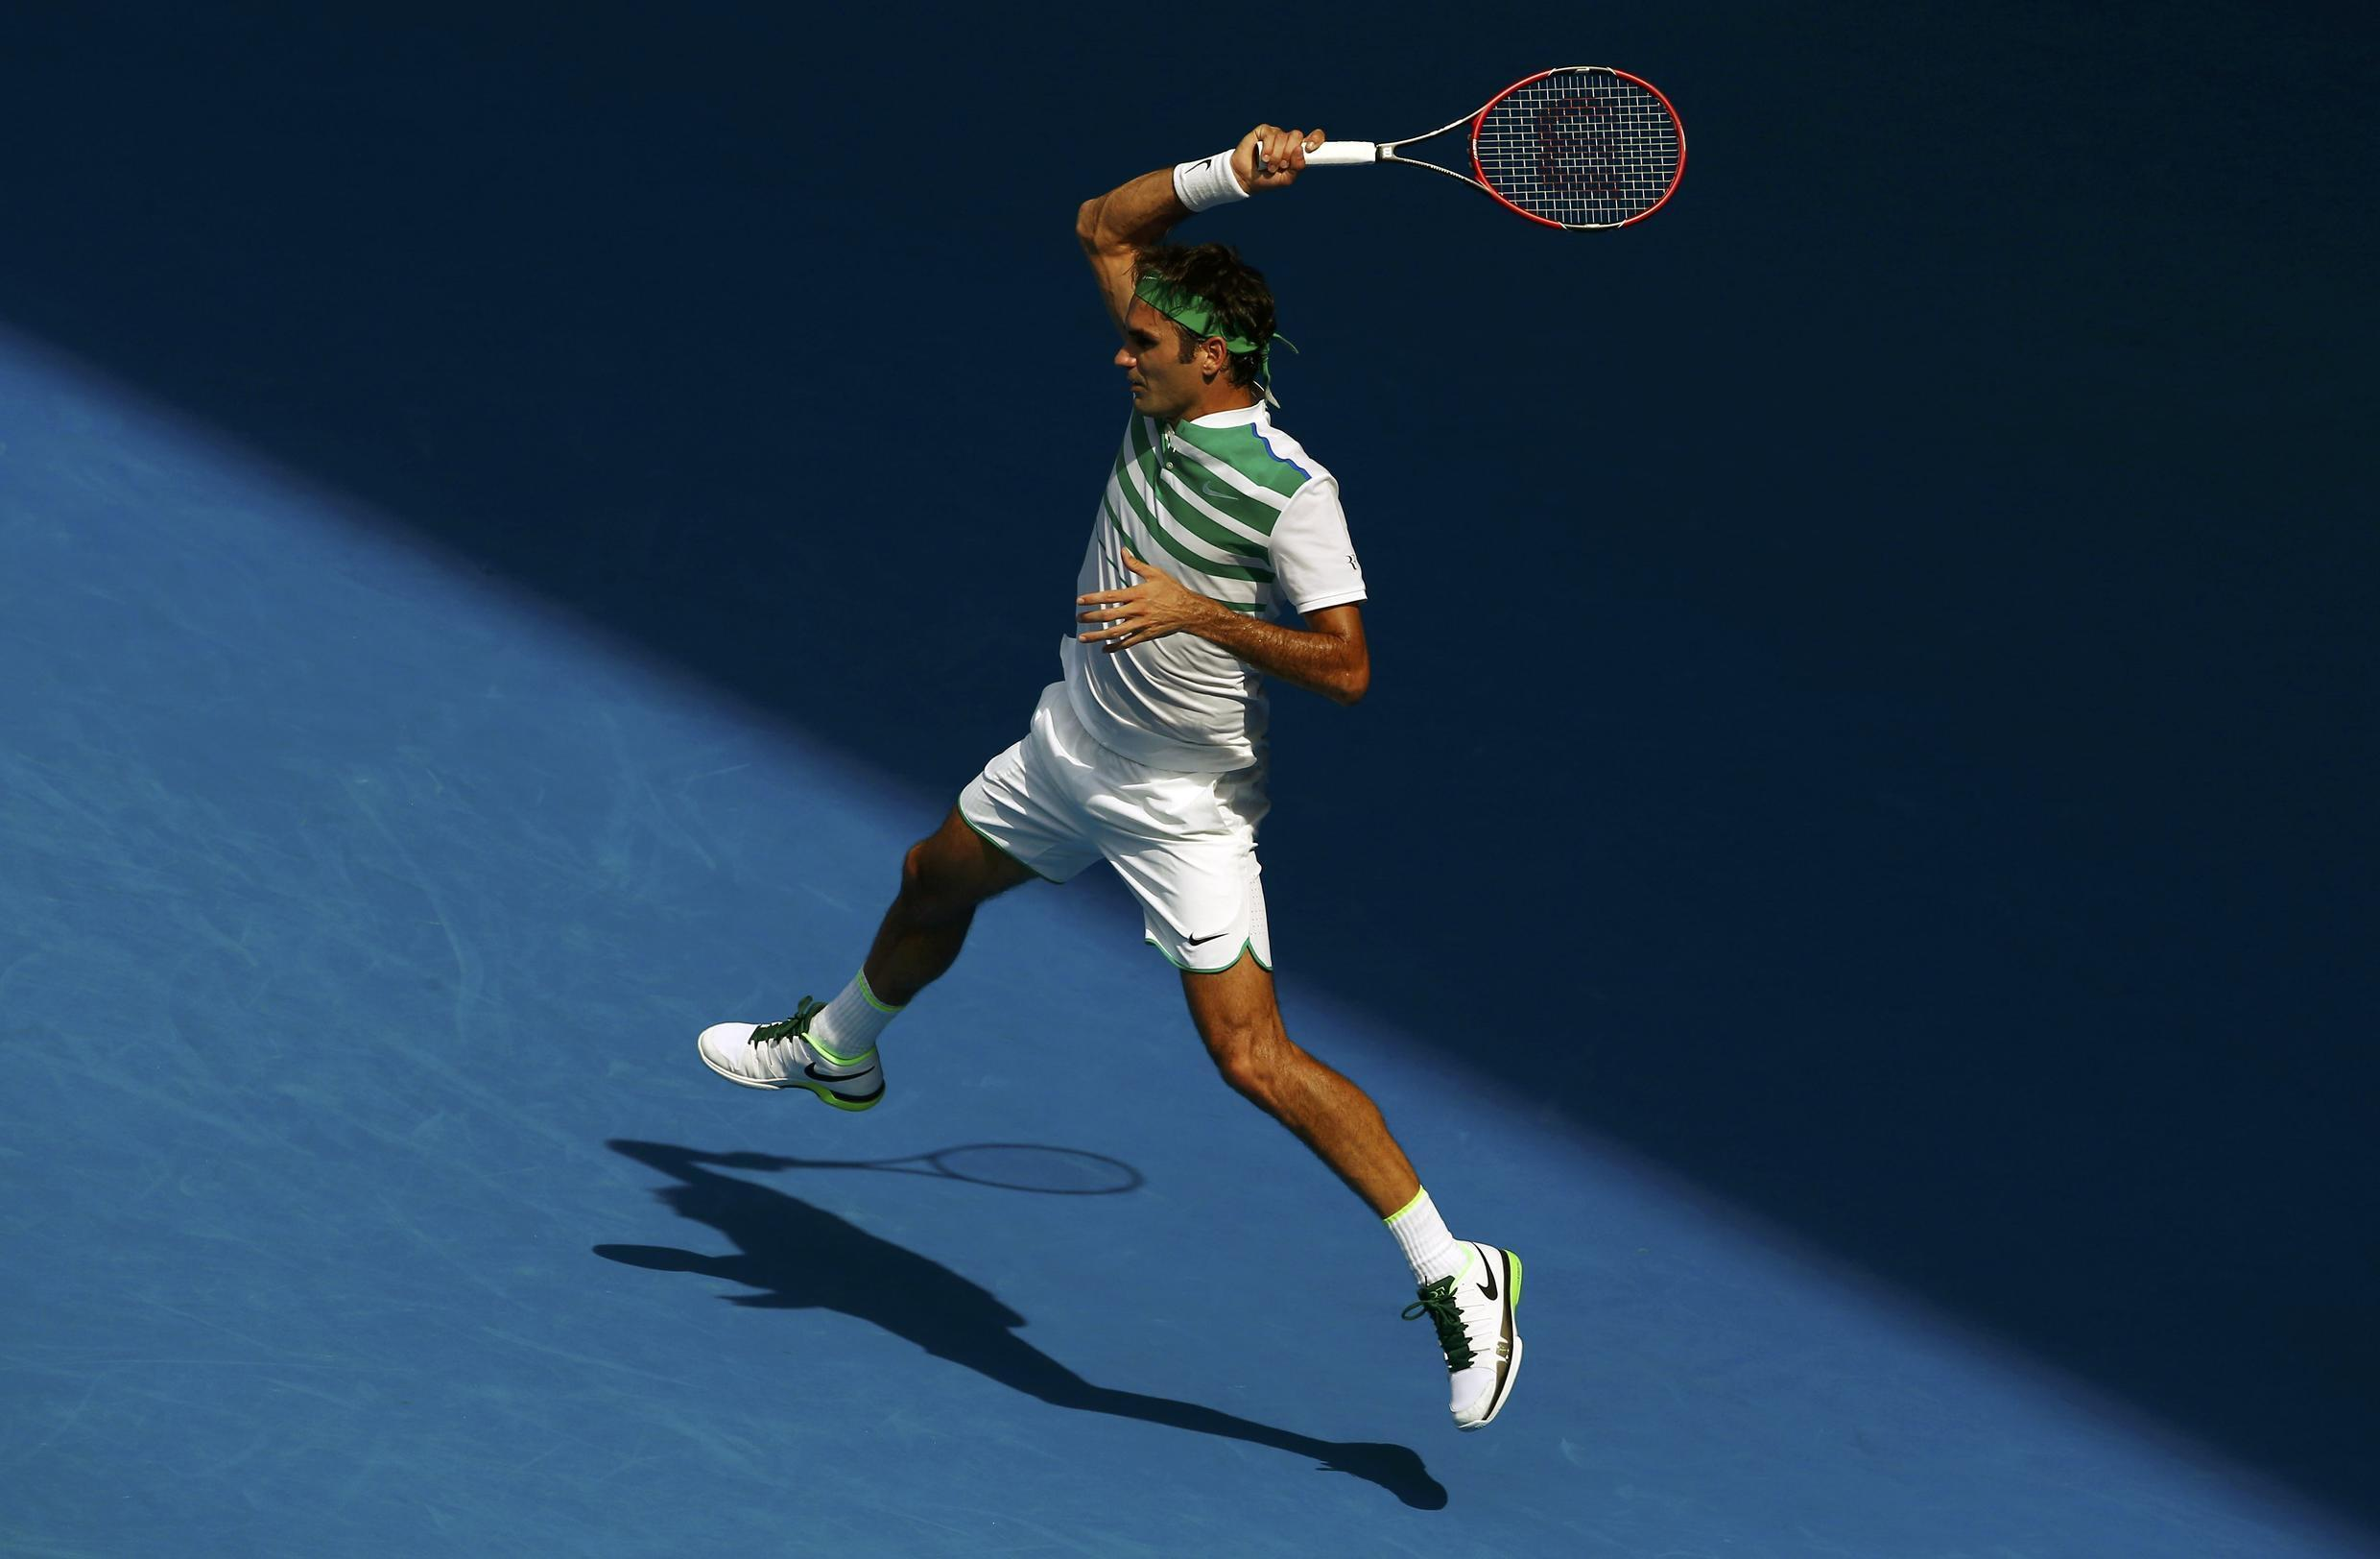 Roger Federer will face Novak Djokovic in the semi final of the Australian Open after beating Tomas Berdych in the quarter final on Tuesday.